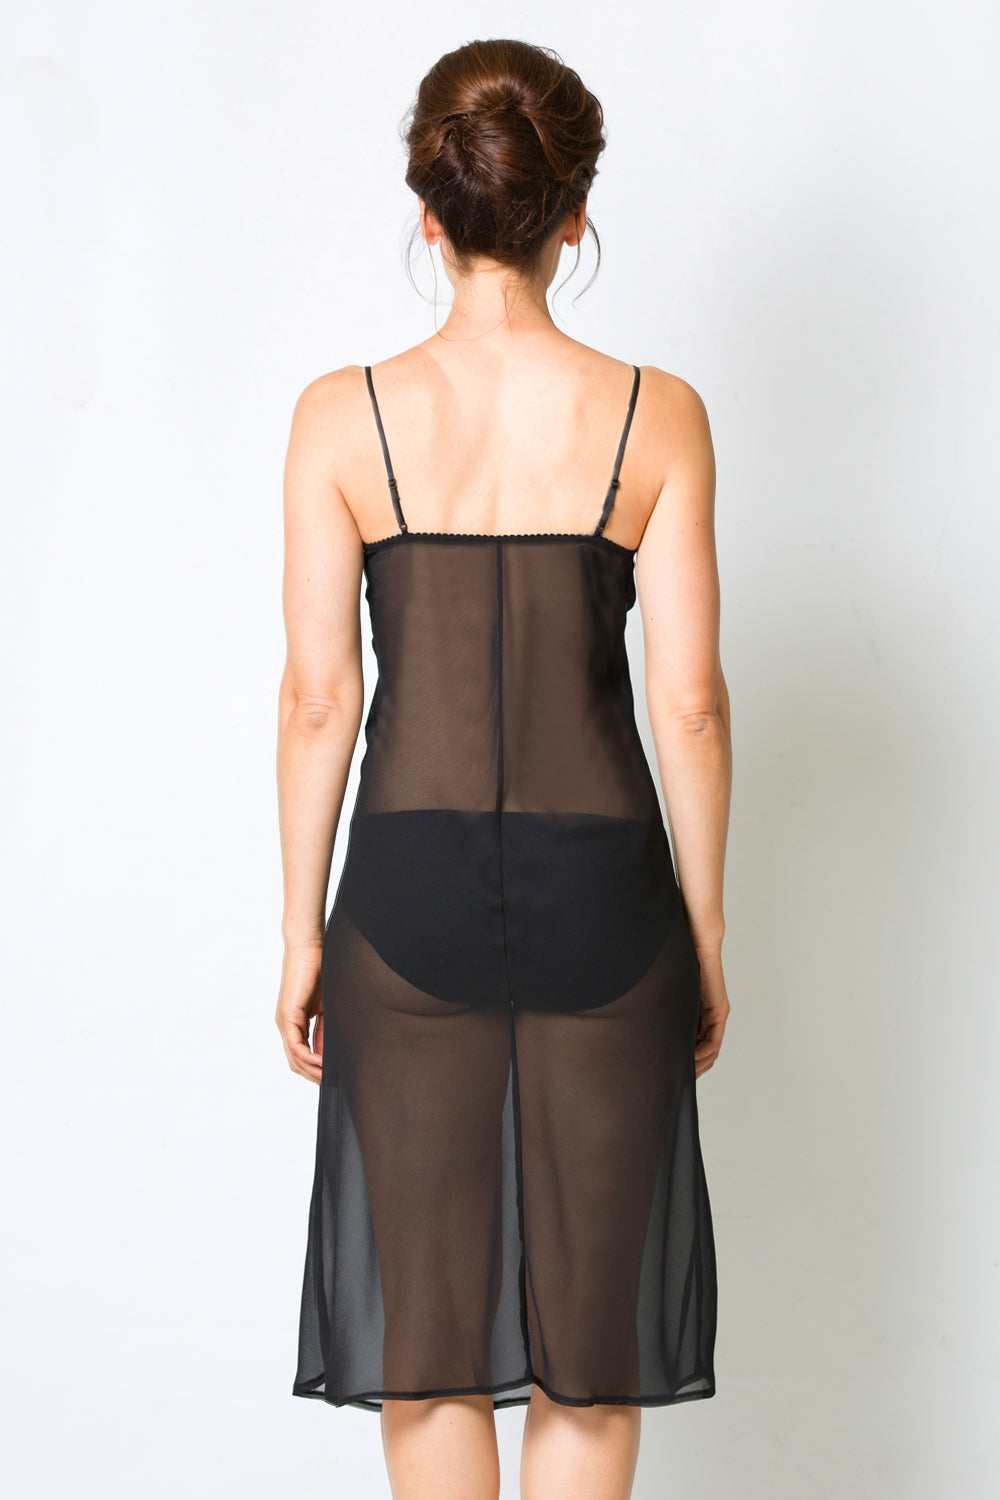 Pam Sheer Slip | Black Slip | Sheer Slip | Undergarments | Essentials | Nightwear | Annah Stretton